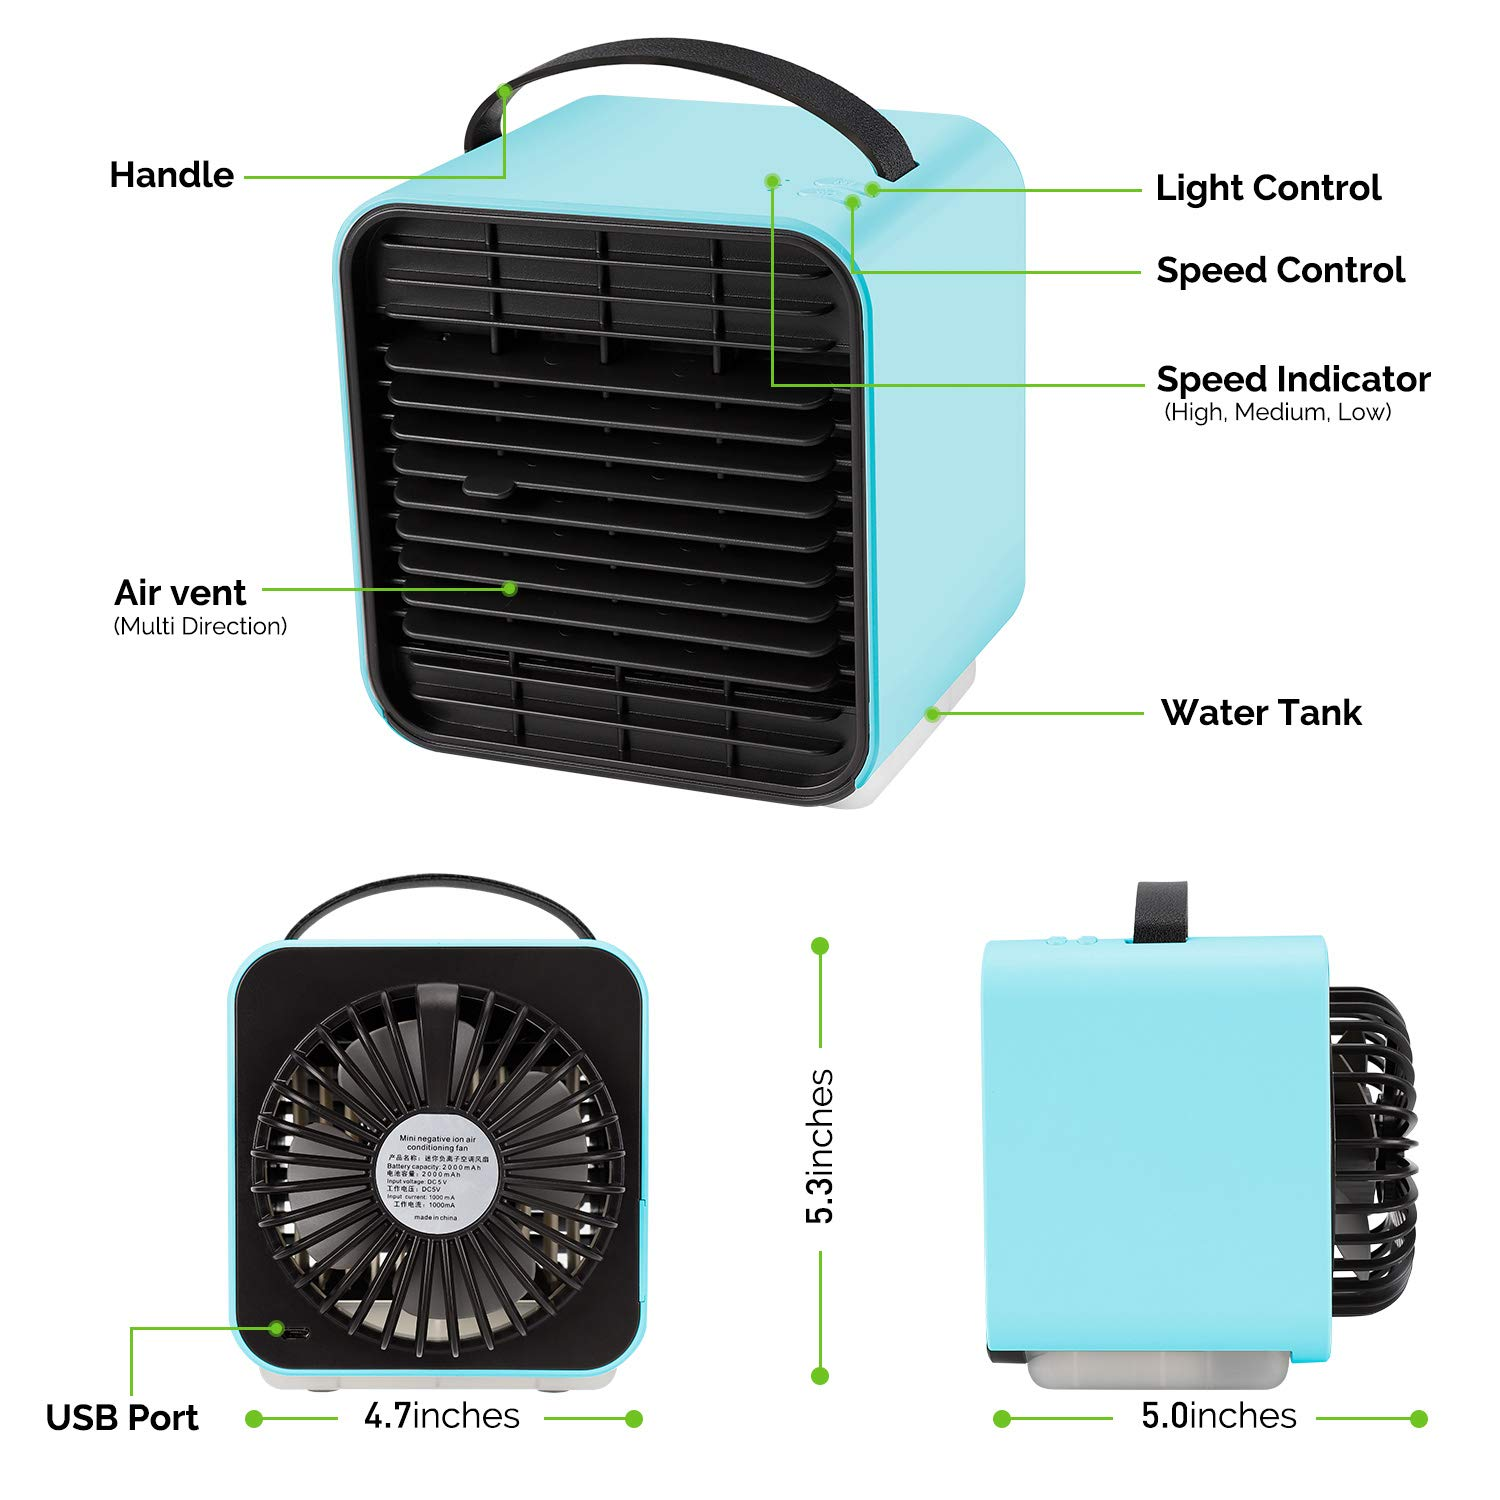 Personal Space Air Cooler Desk Fan Mini Evaporative Cooler Purifier Table Fan USB Rechargeable Fan with Handle and Night Light for Home Room Office Dorm Blue UPSTONE Portable Air Conditioner Fan